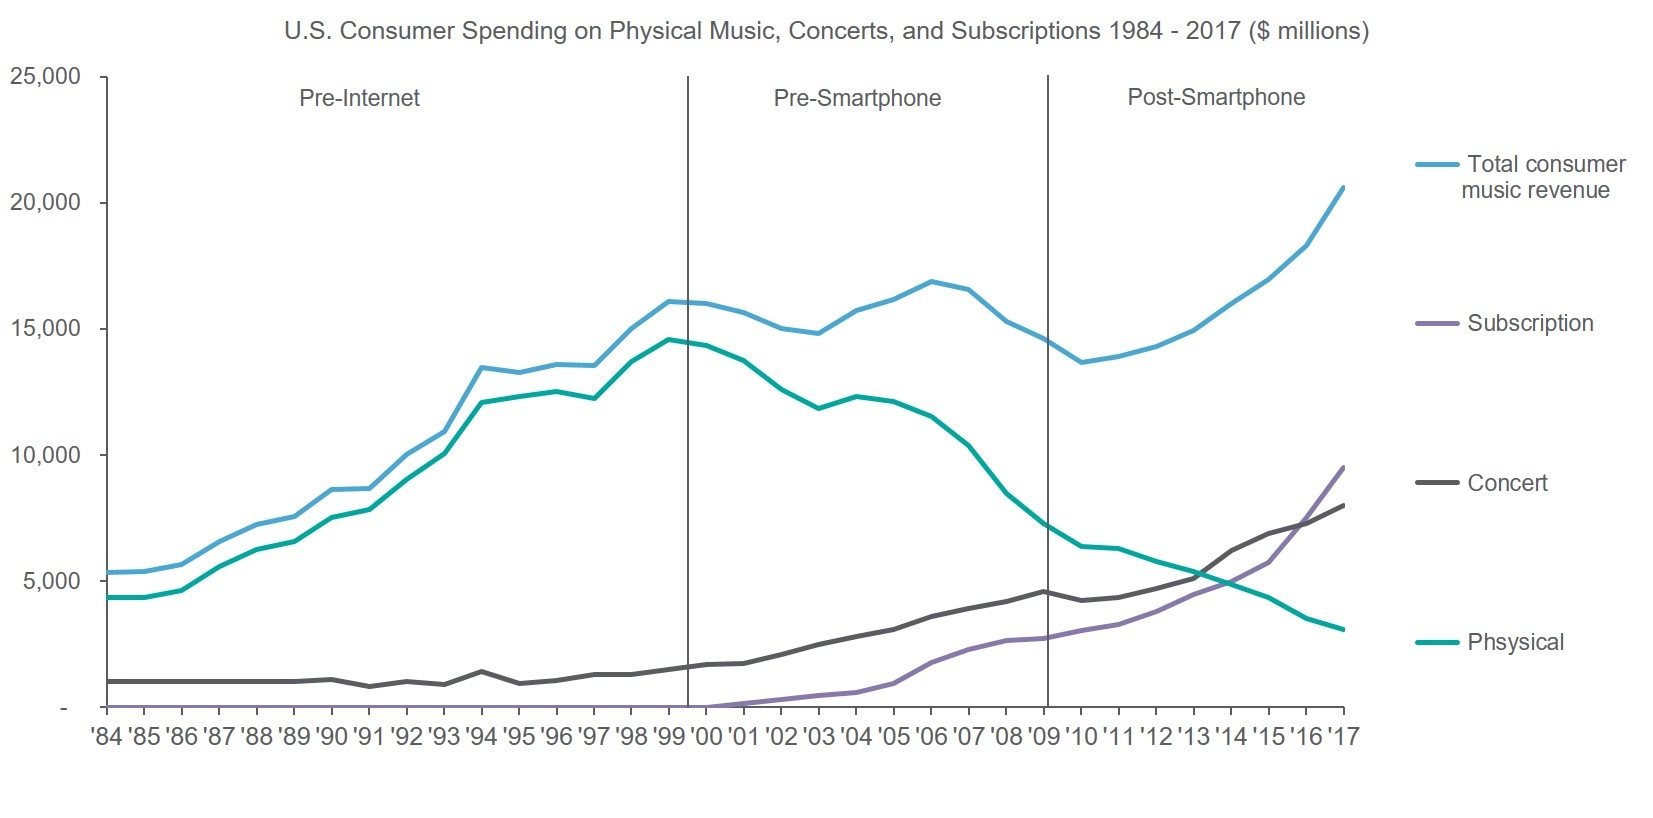 US Consumer Spending on Physical Music, Concerts & Subscriptions 1984-2017